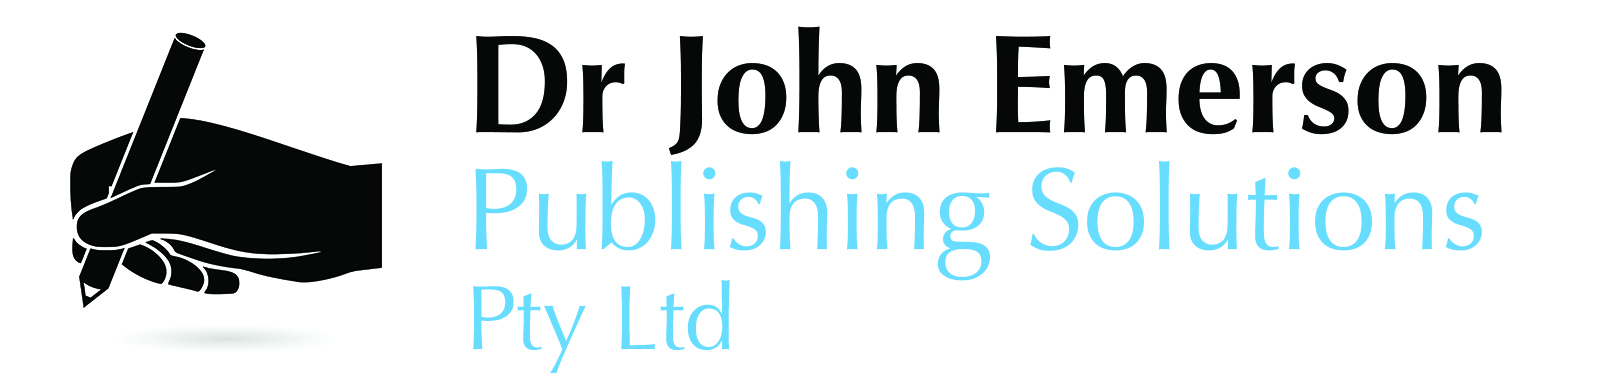 John Emerson Publishing Solutions